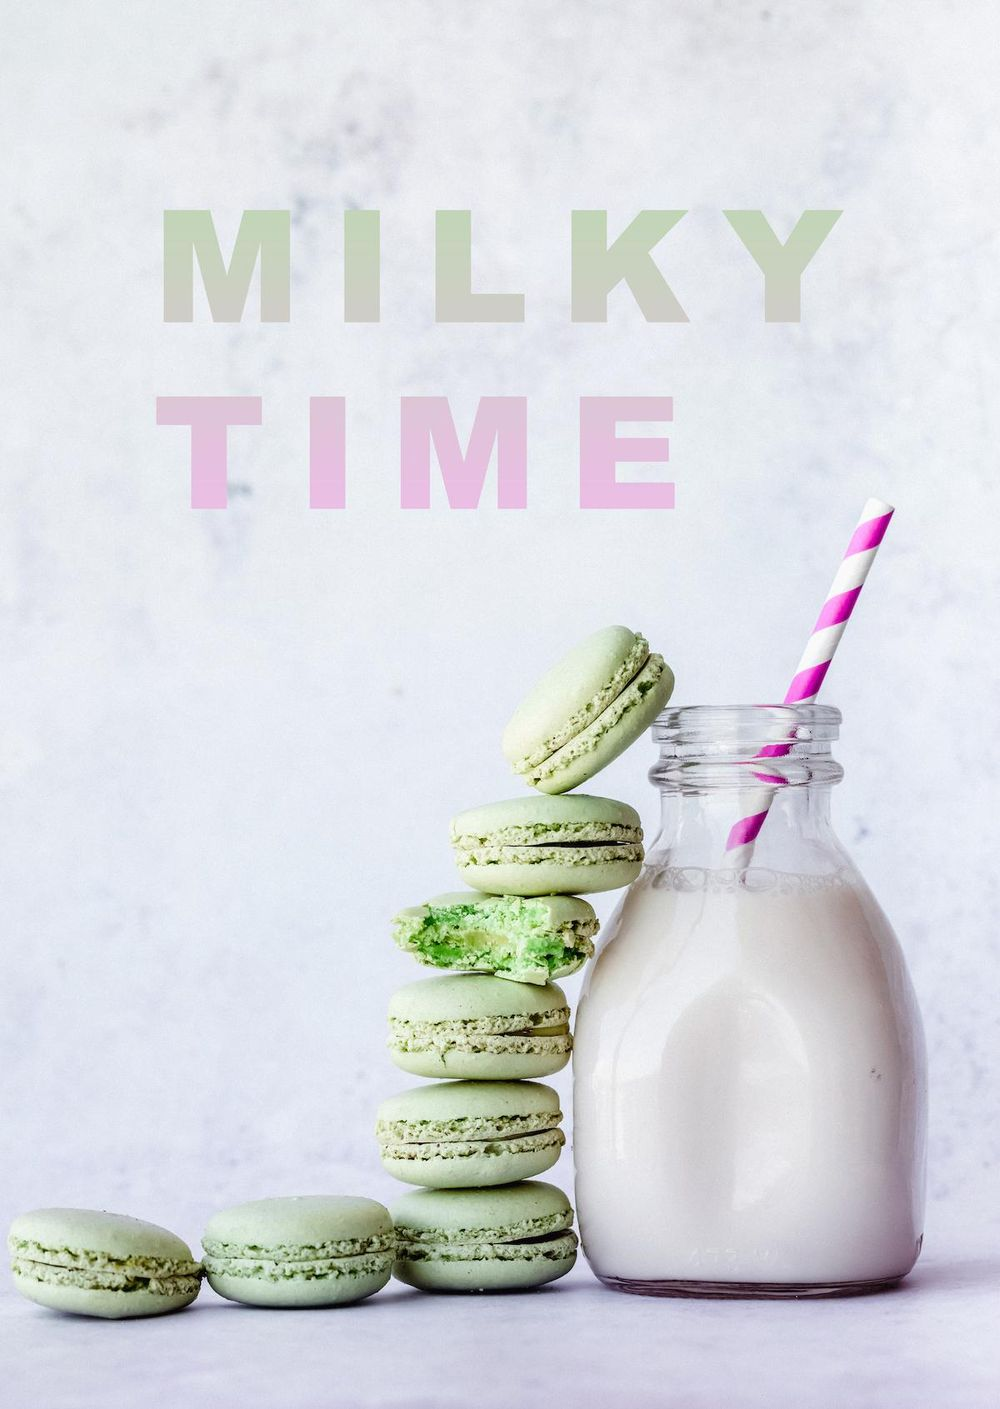 Milky Time - image 1 - student project